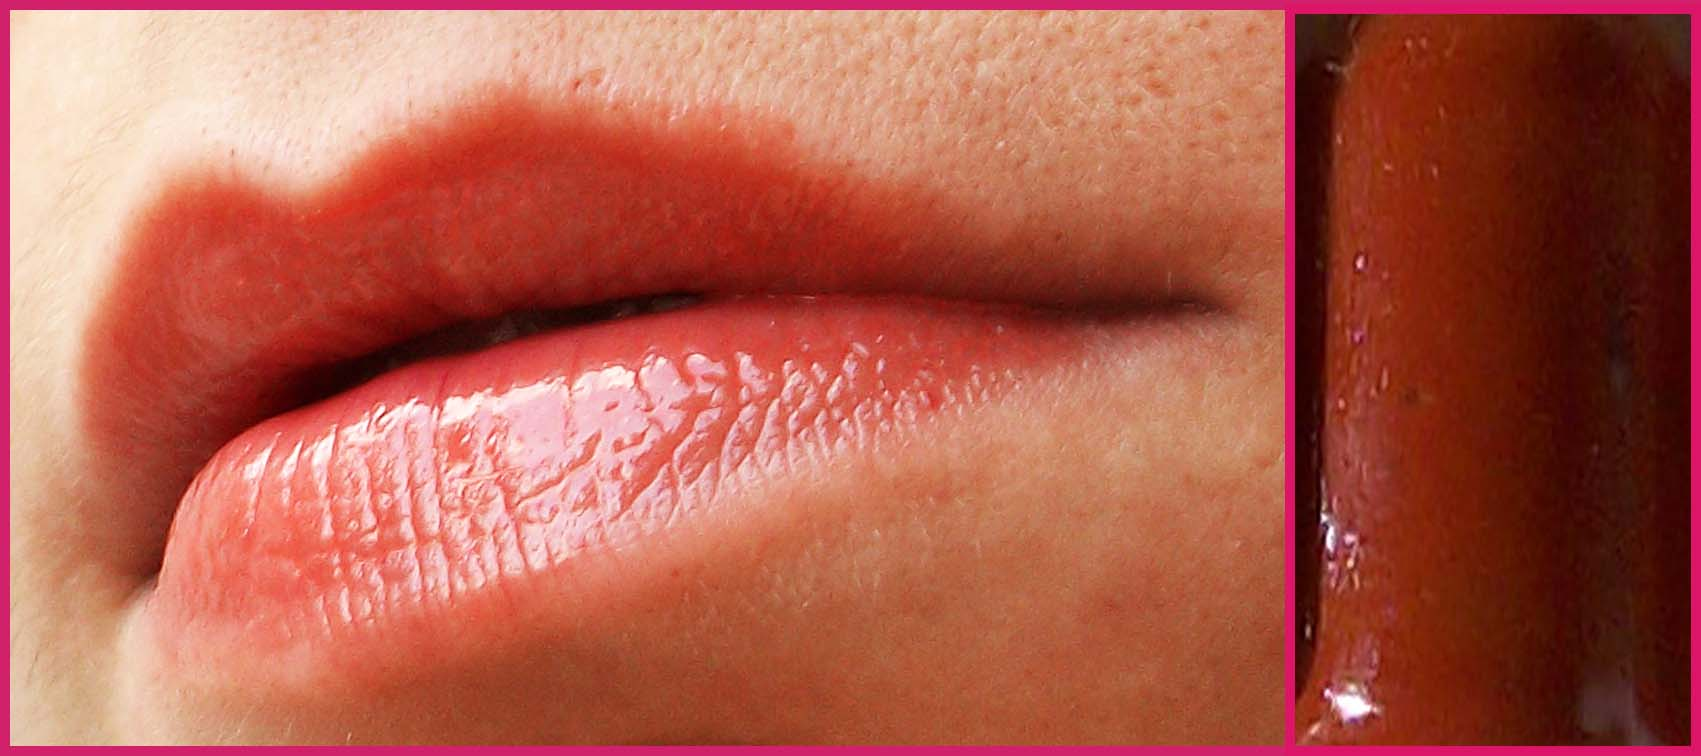 immagine lipgloss ruggine fatto in casa homemade sfumaturemakeup & beauty